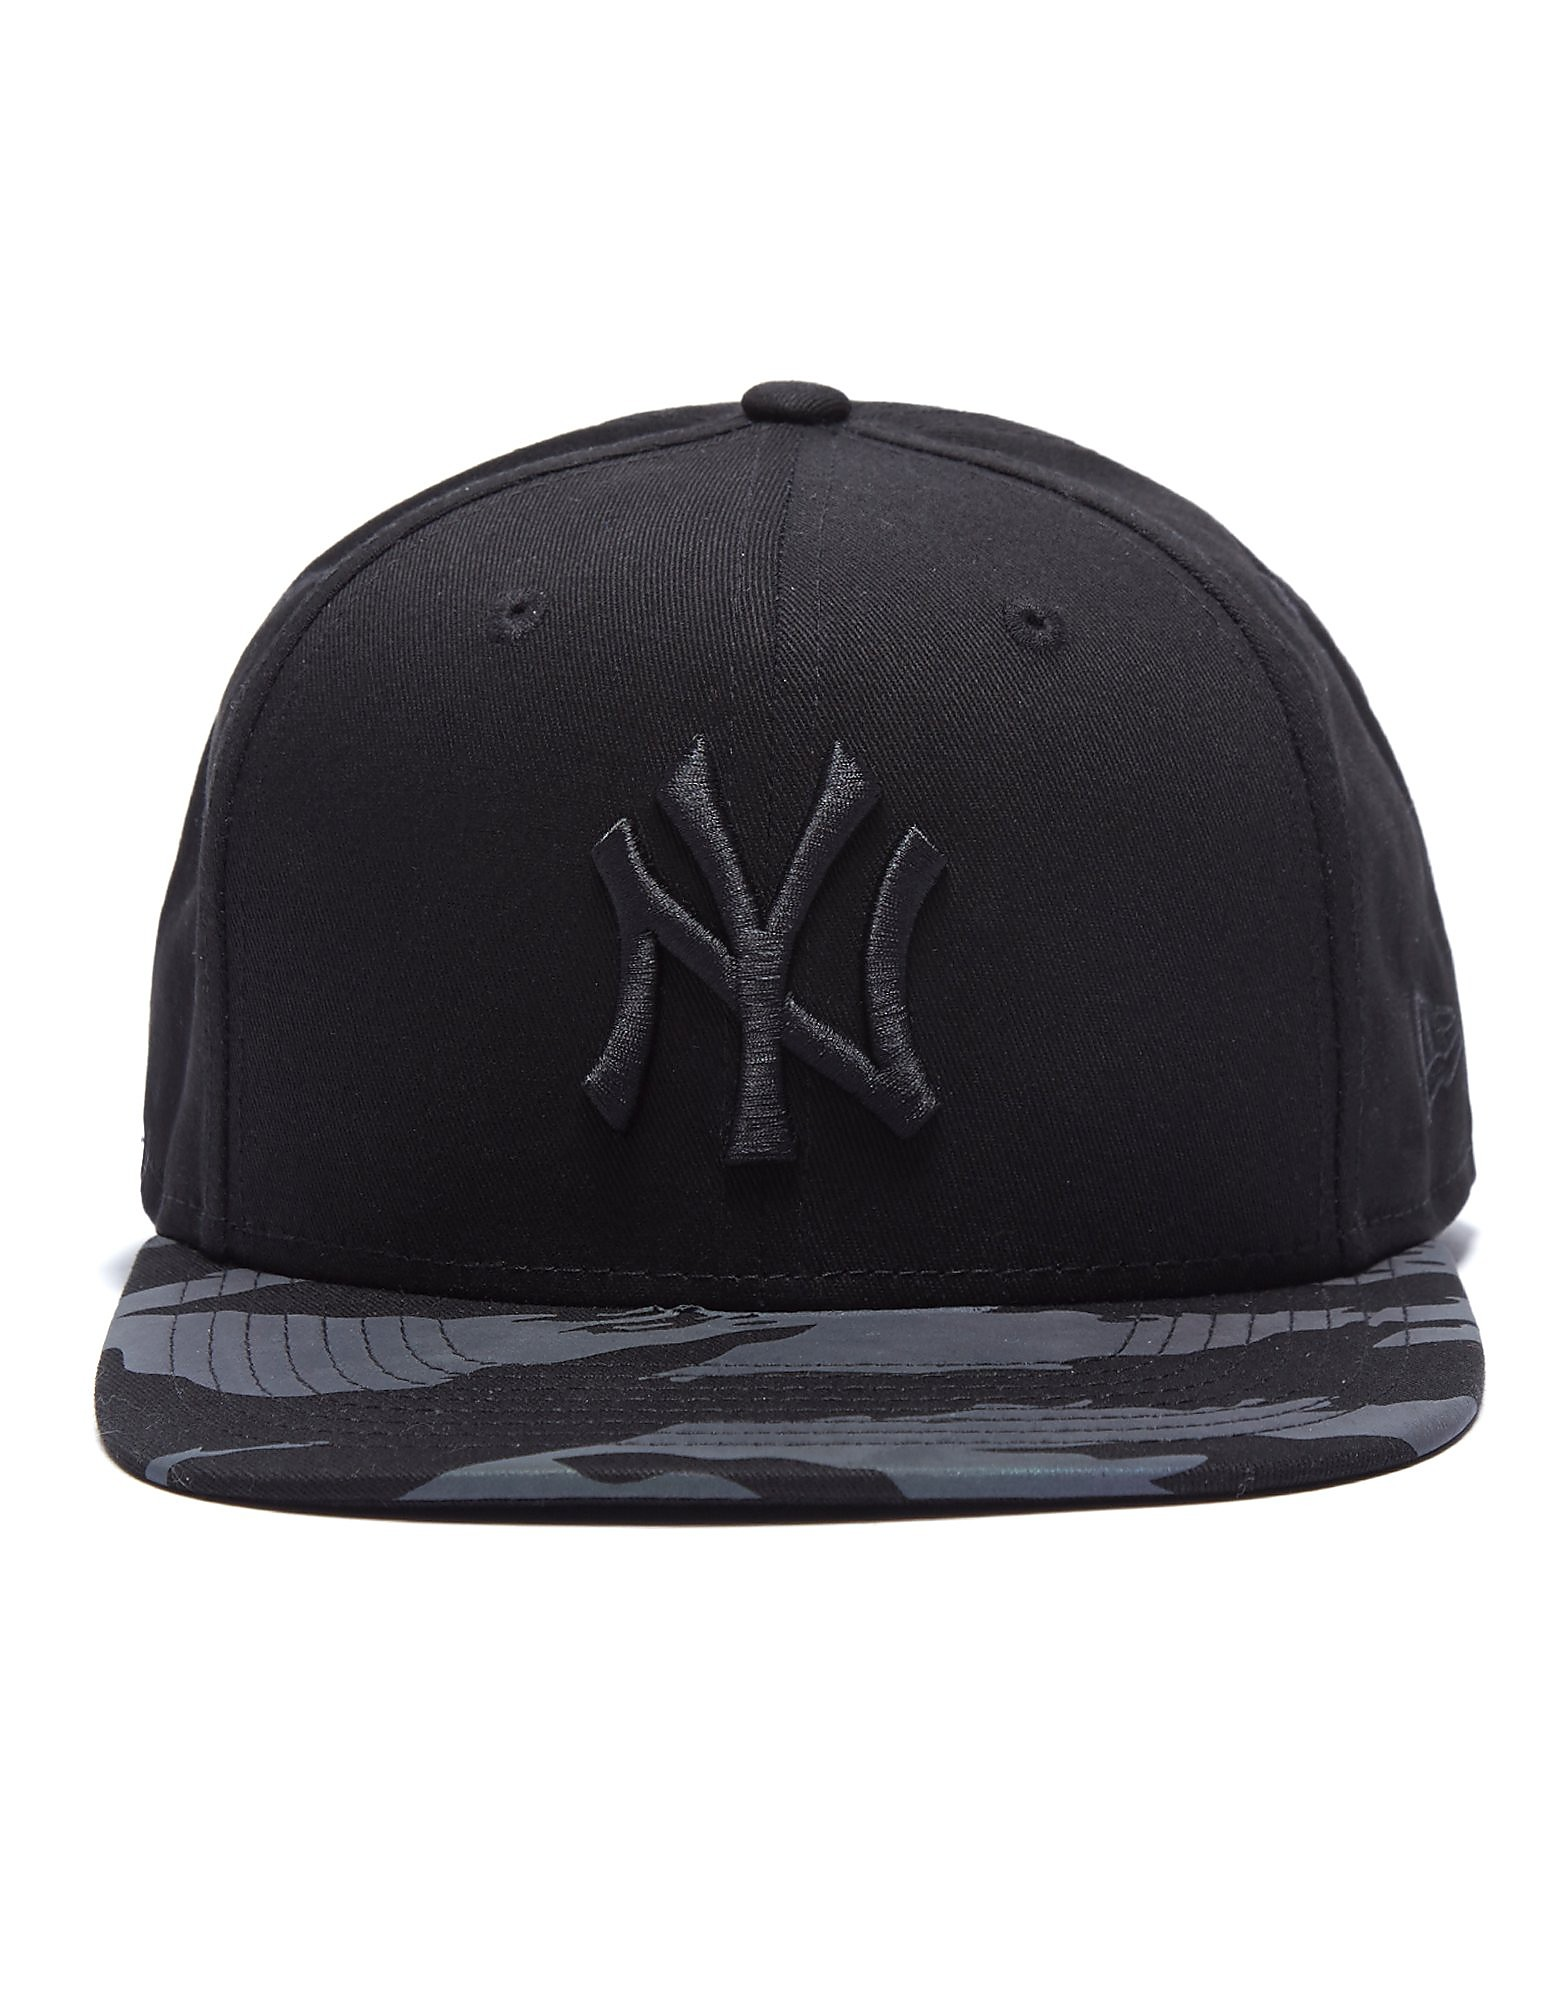 New Era MLB New York Yankees 9FIFTY Reflective Visor Cap